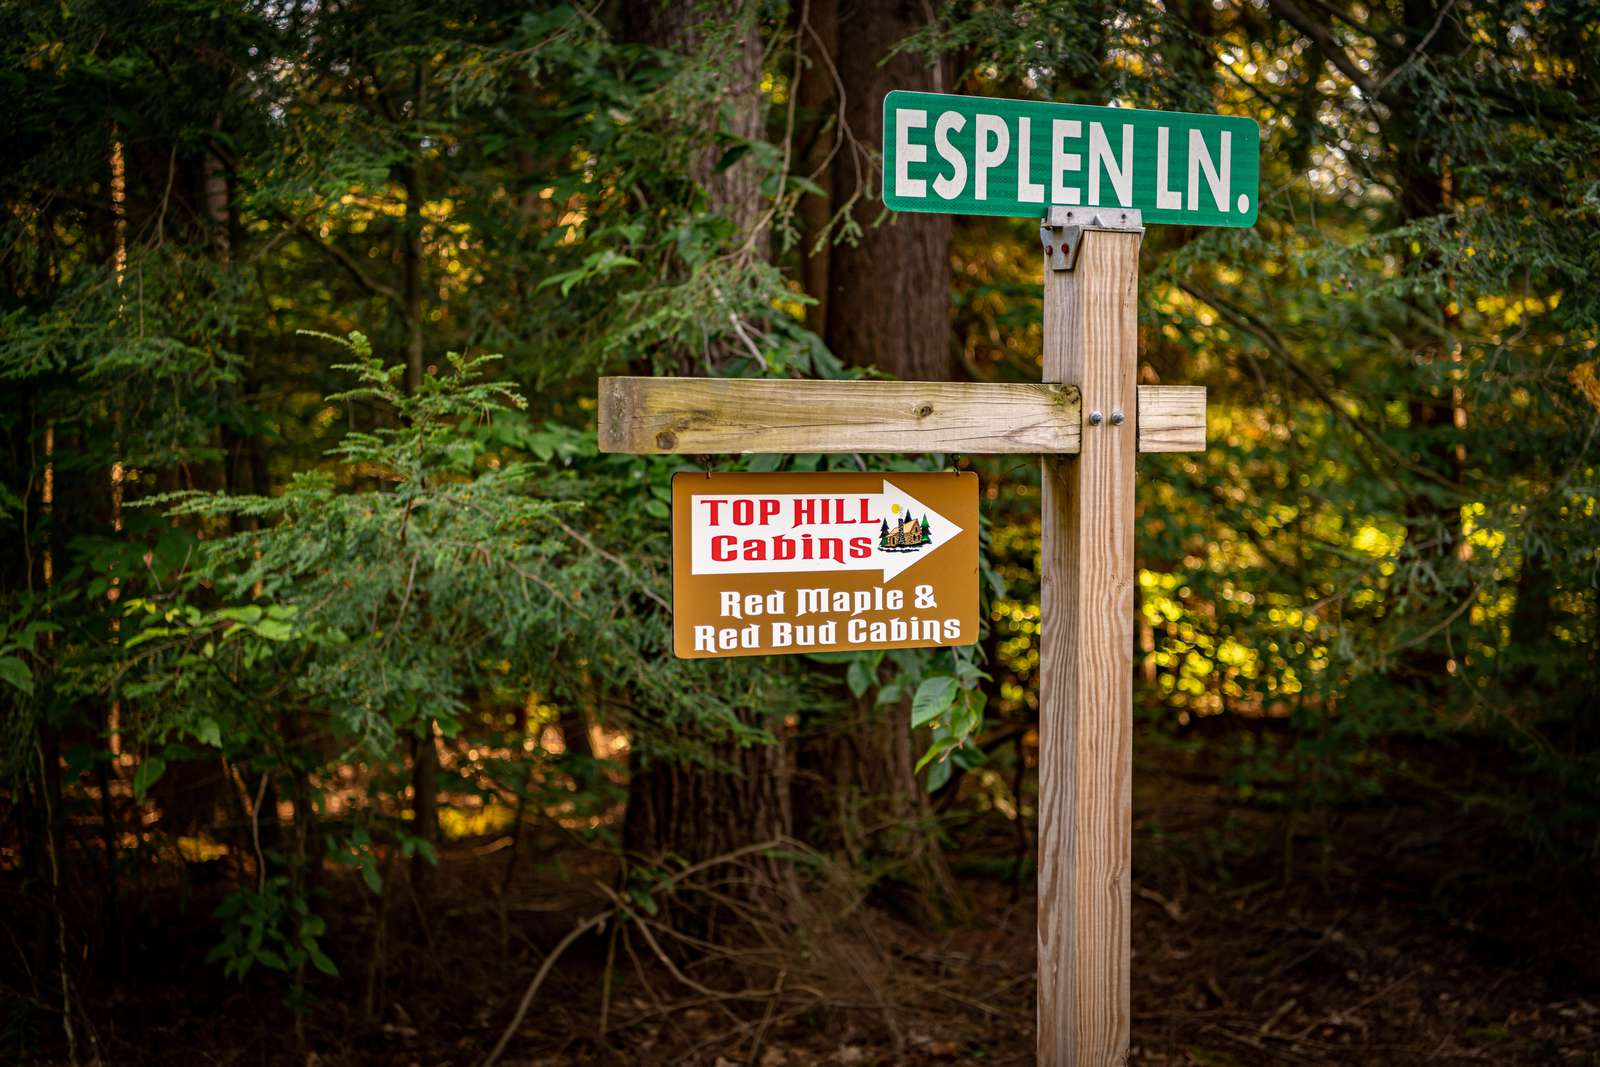 Esplen Lane Sign going to Red Bud Cabin